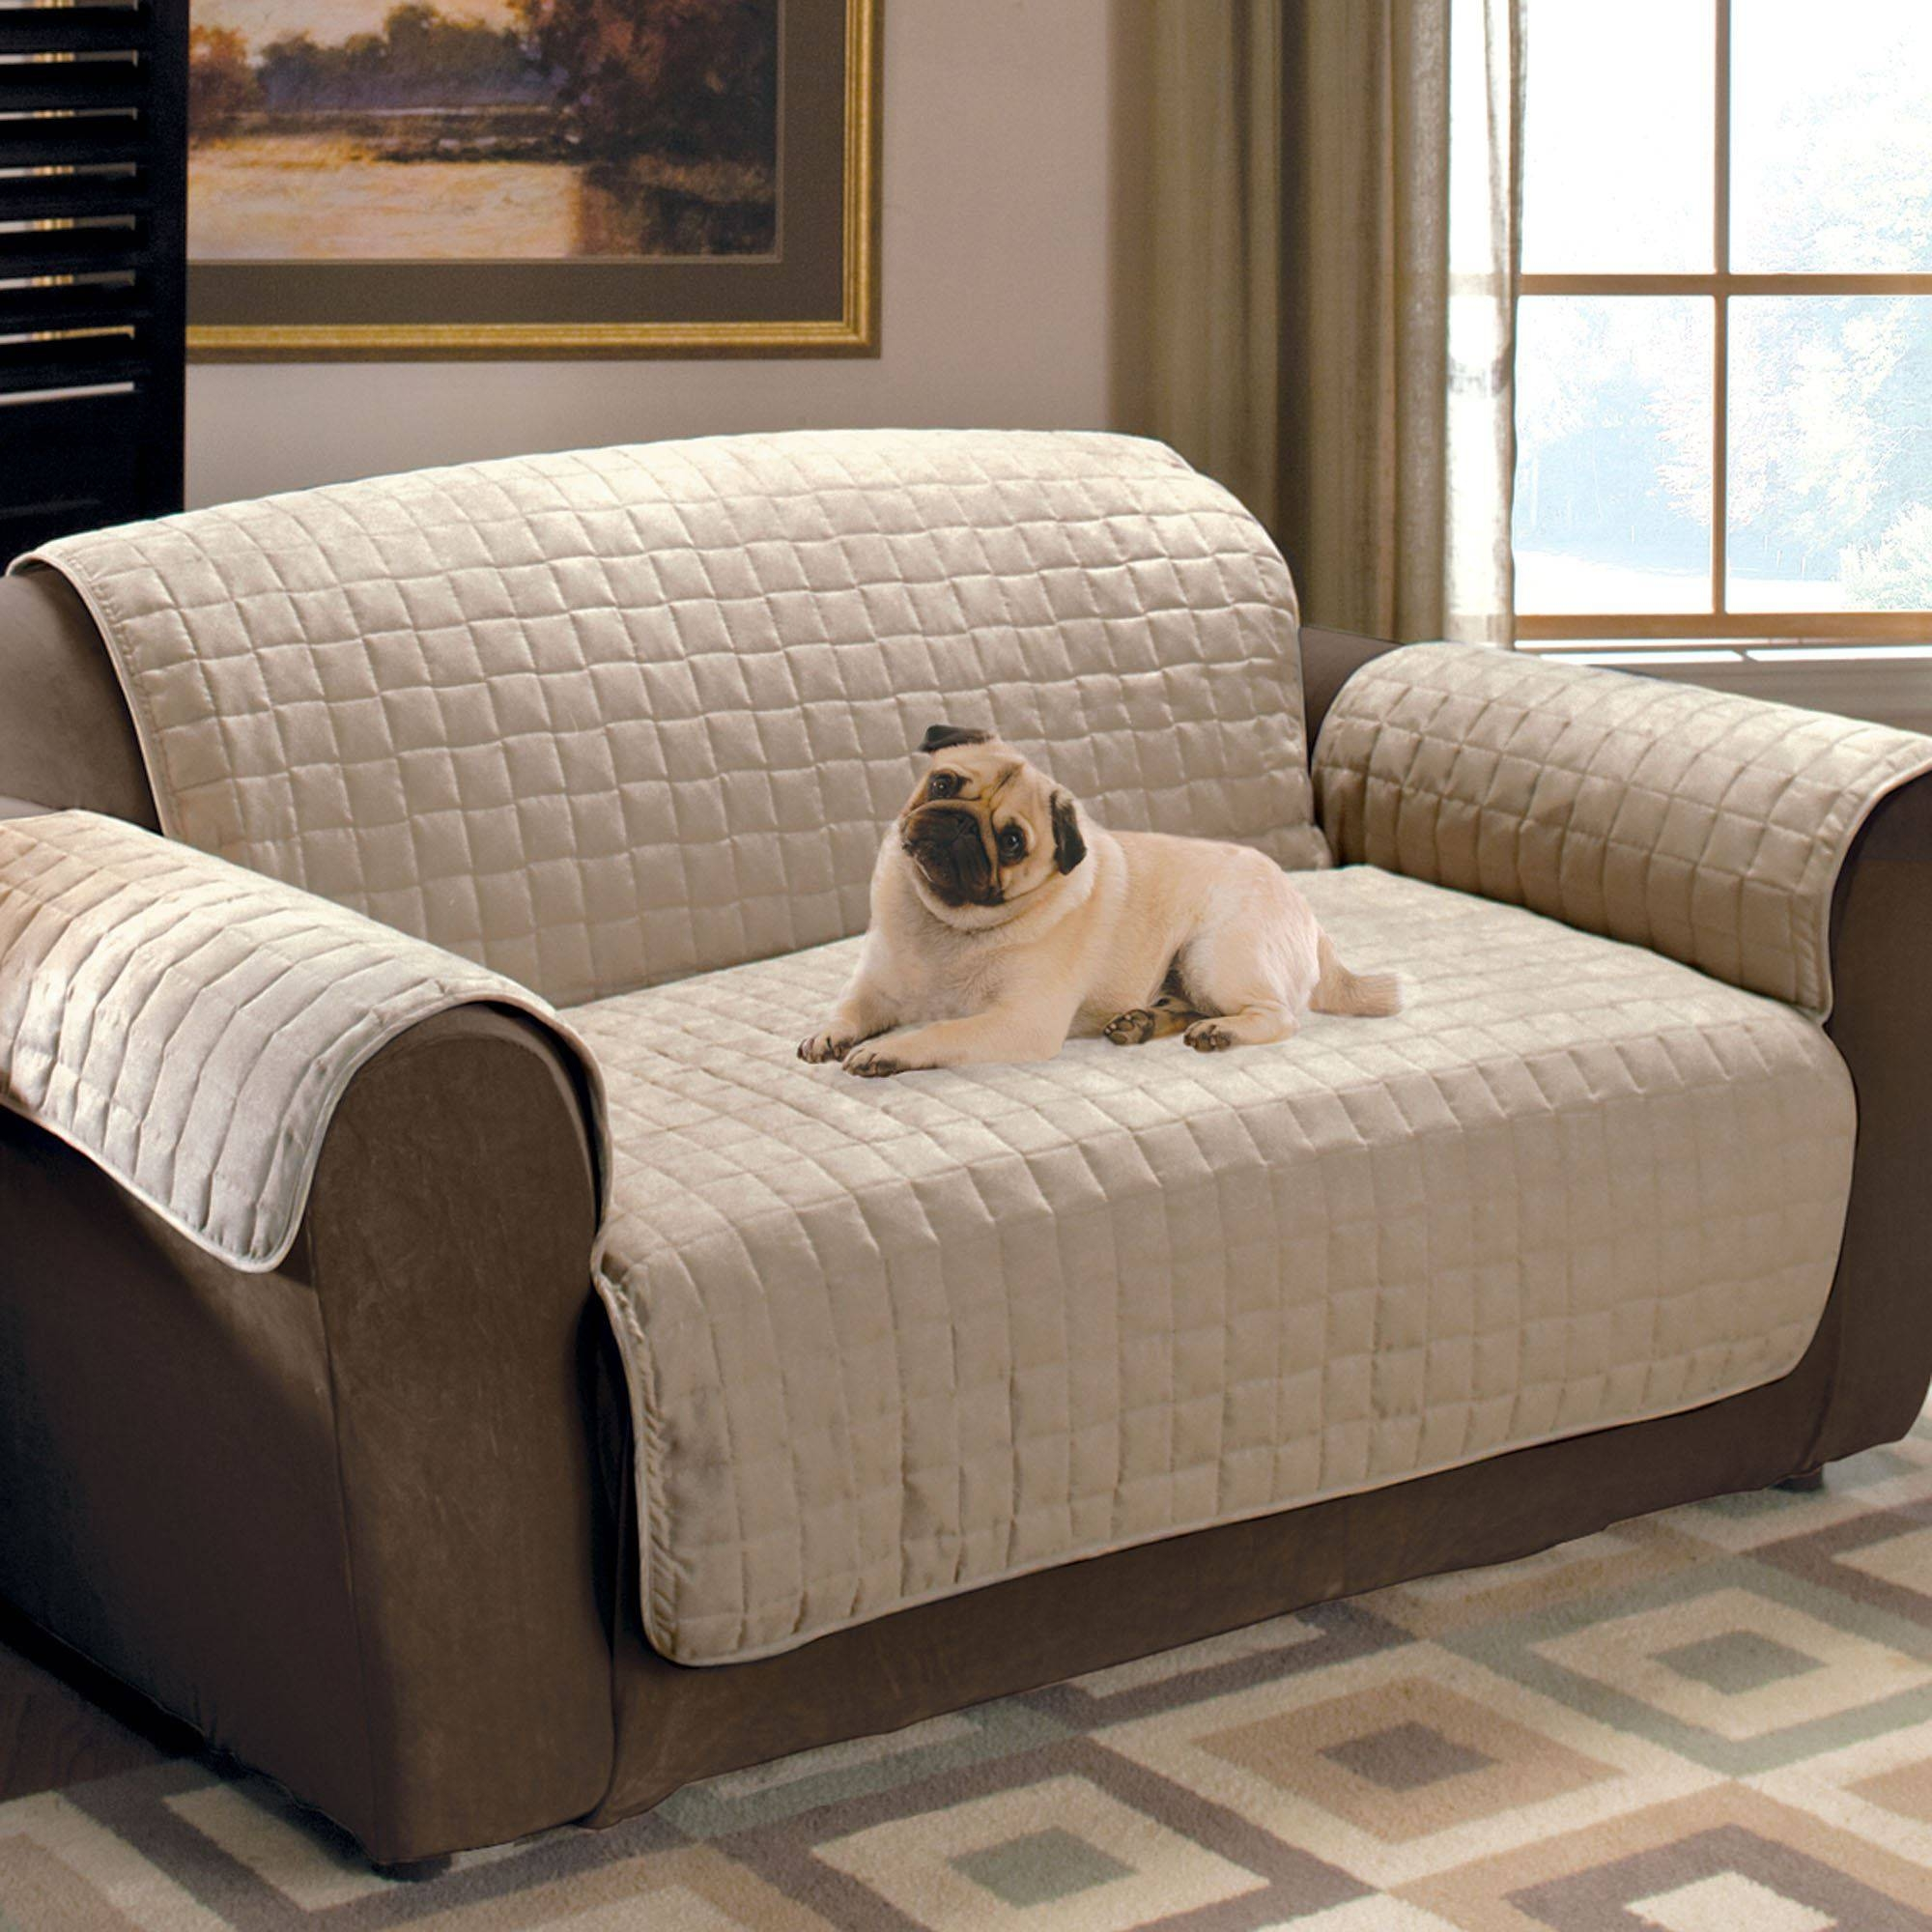 Faux Suede Pet Furniture Covers For Sofas, Loveseats, And Chairs in Sofa Settee Covers (Image 10 of 30)